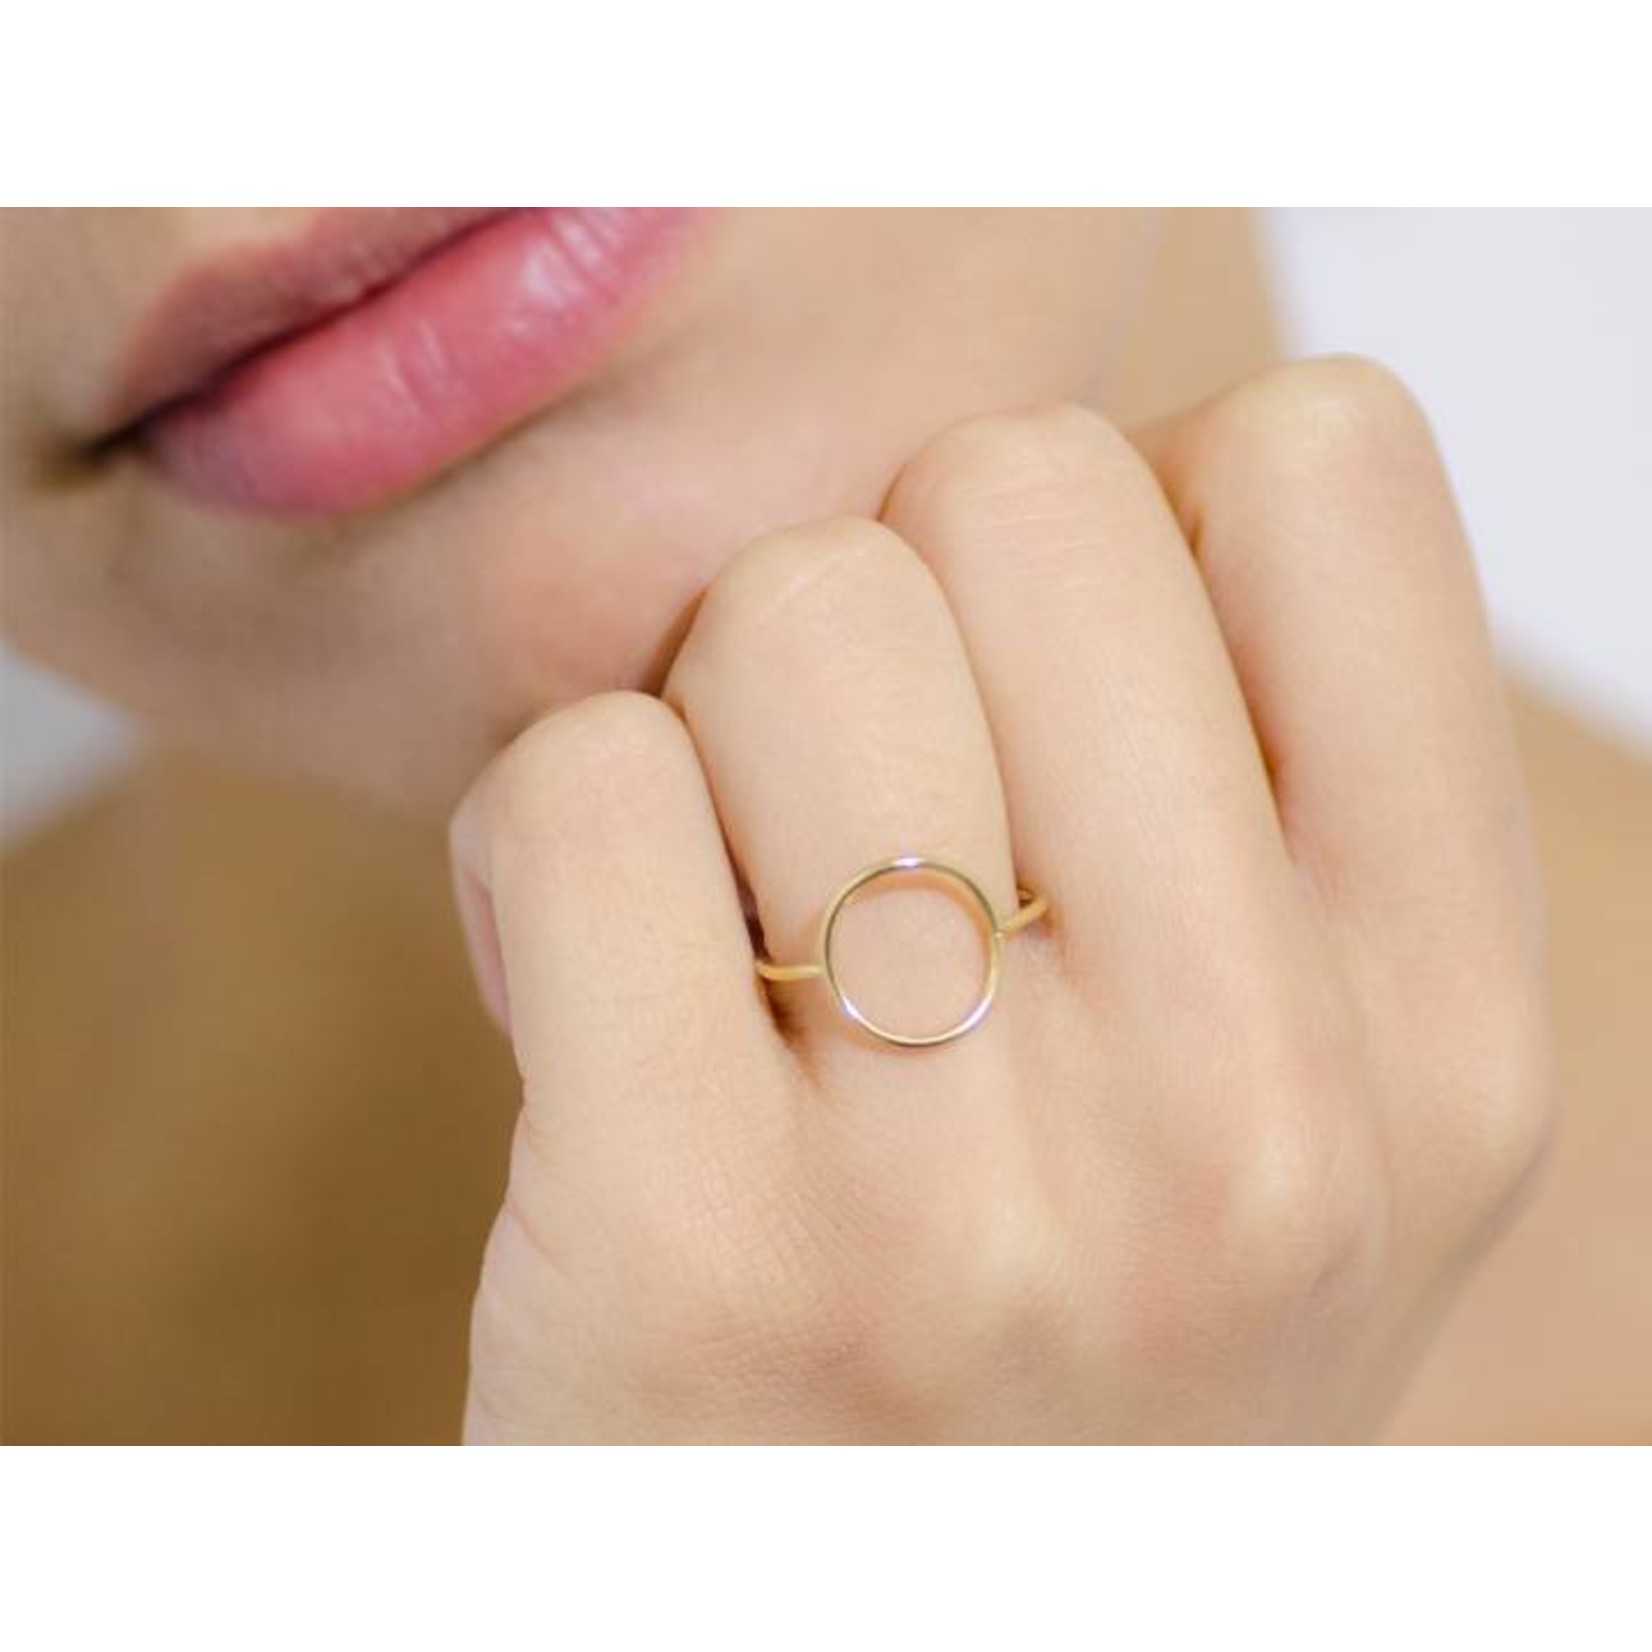 charlotte wooning ring geometry circle - zilver